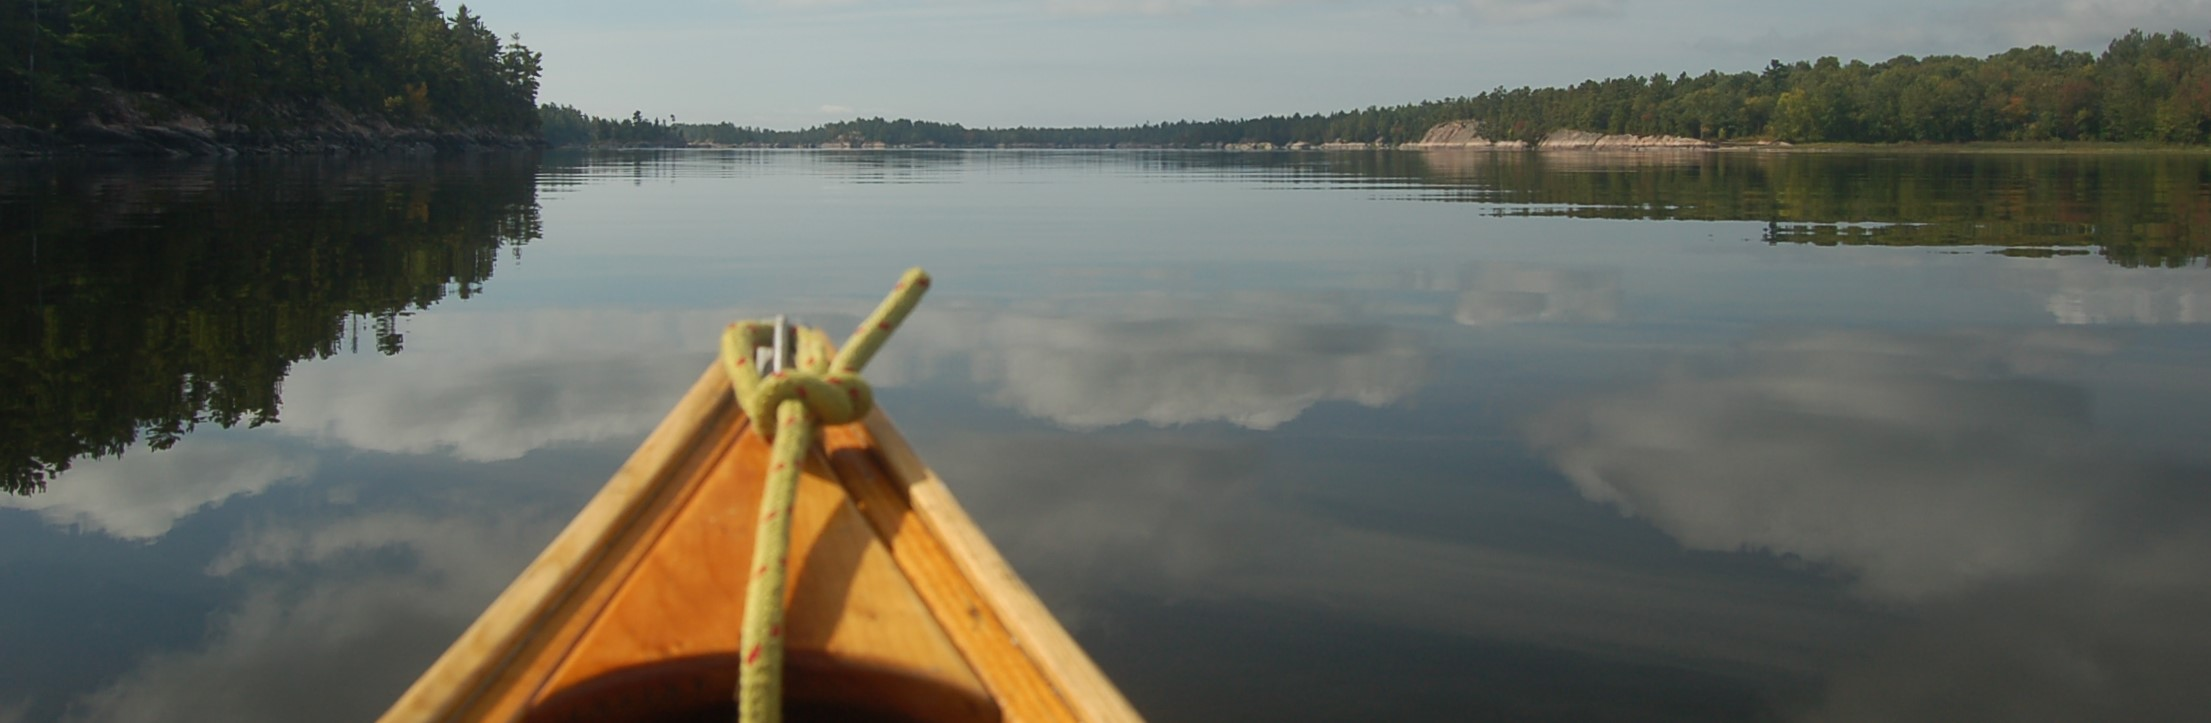 A canoe on the French River in Canada